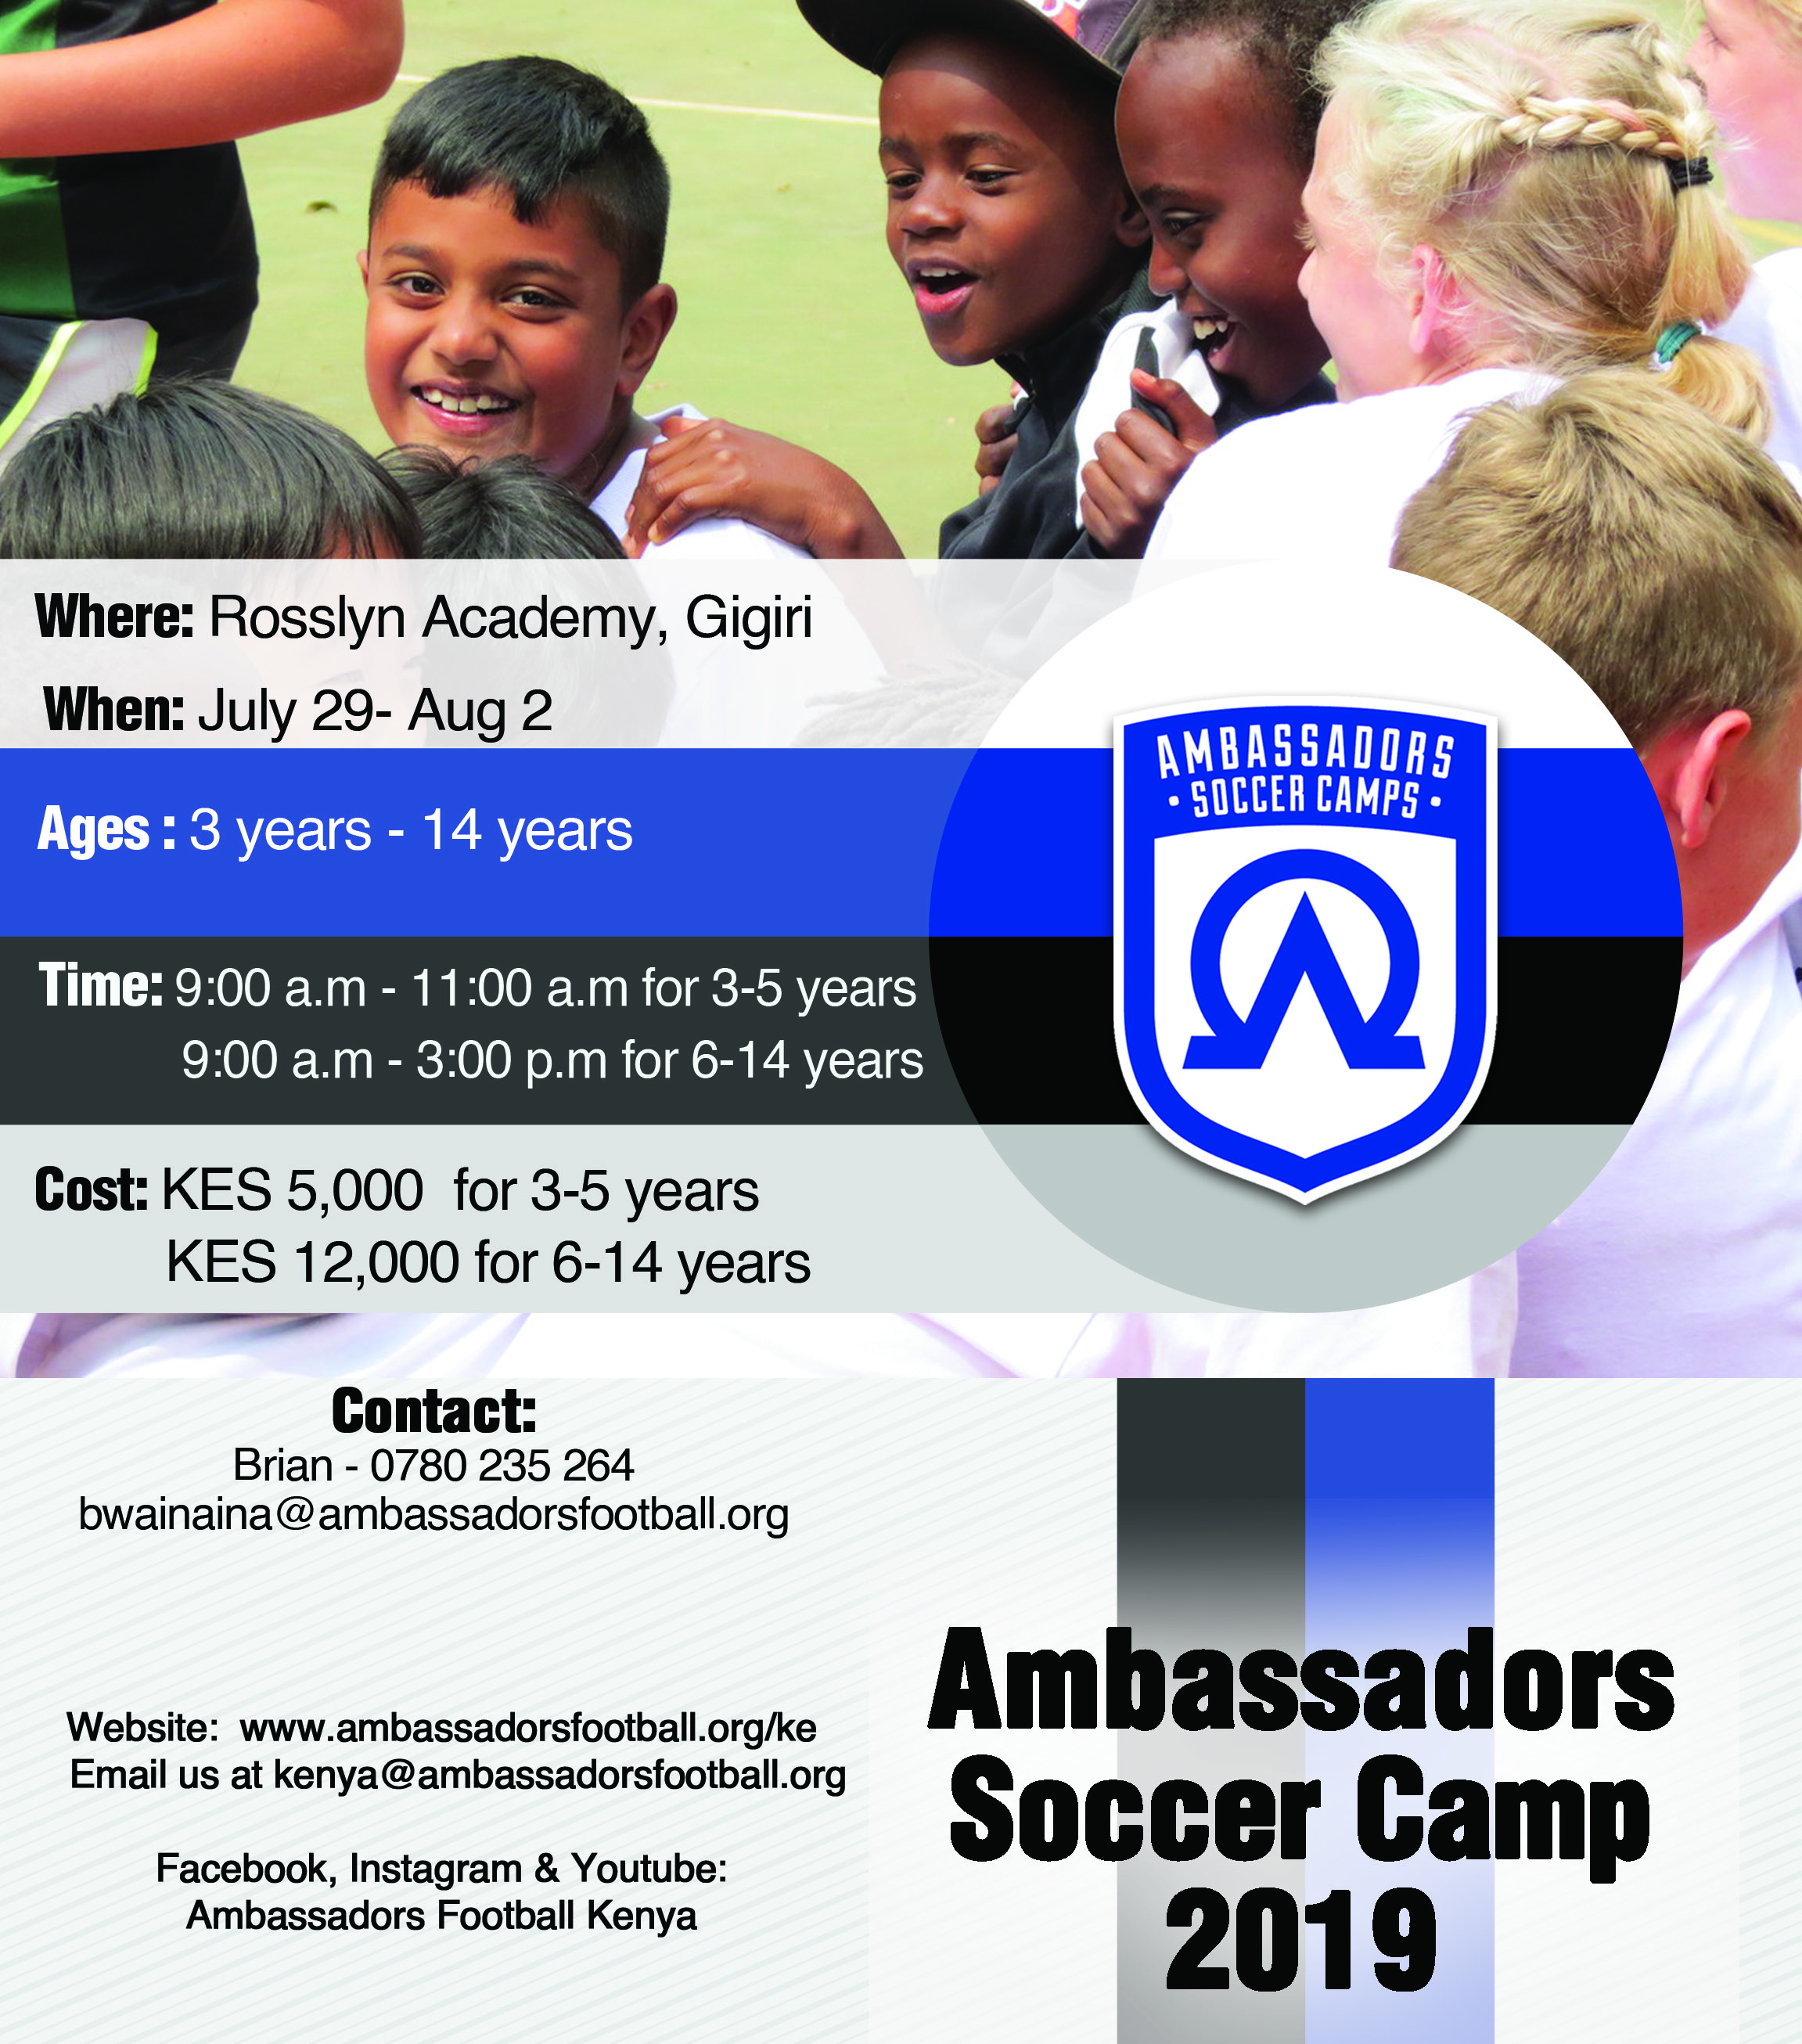 Ambassadors Football Summer Camp 2019